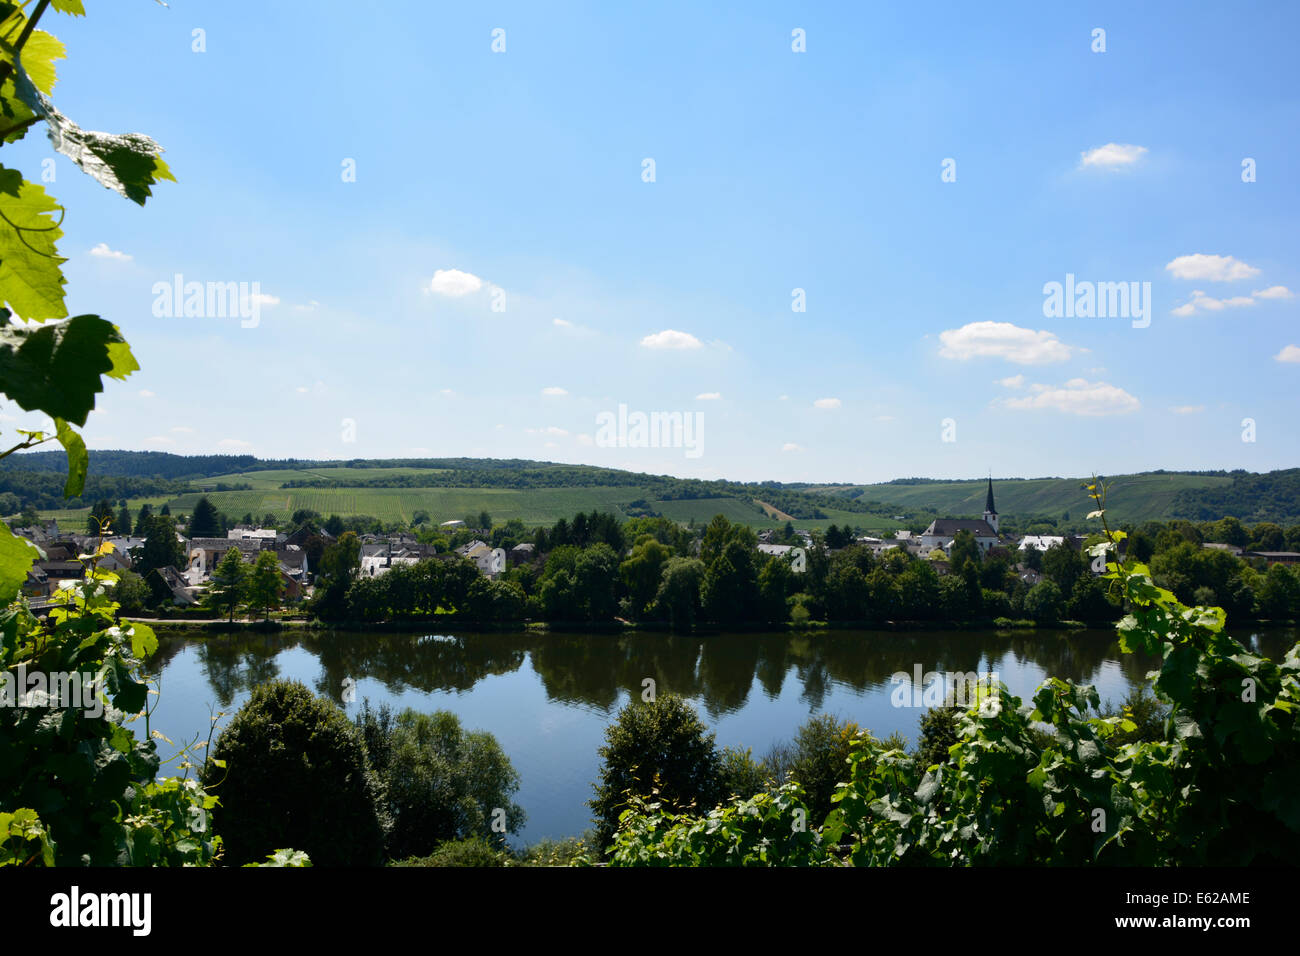 Longuich Moselle river valley vineyard landscape with blue sky Mosellandschaft Moseltal Römische Weinstrasse Germany Mosel Fluss Stock Photo